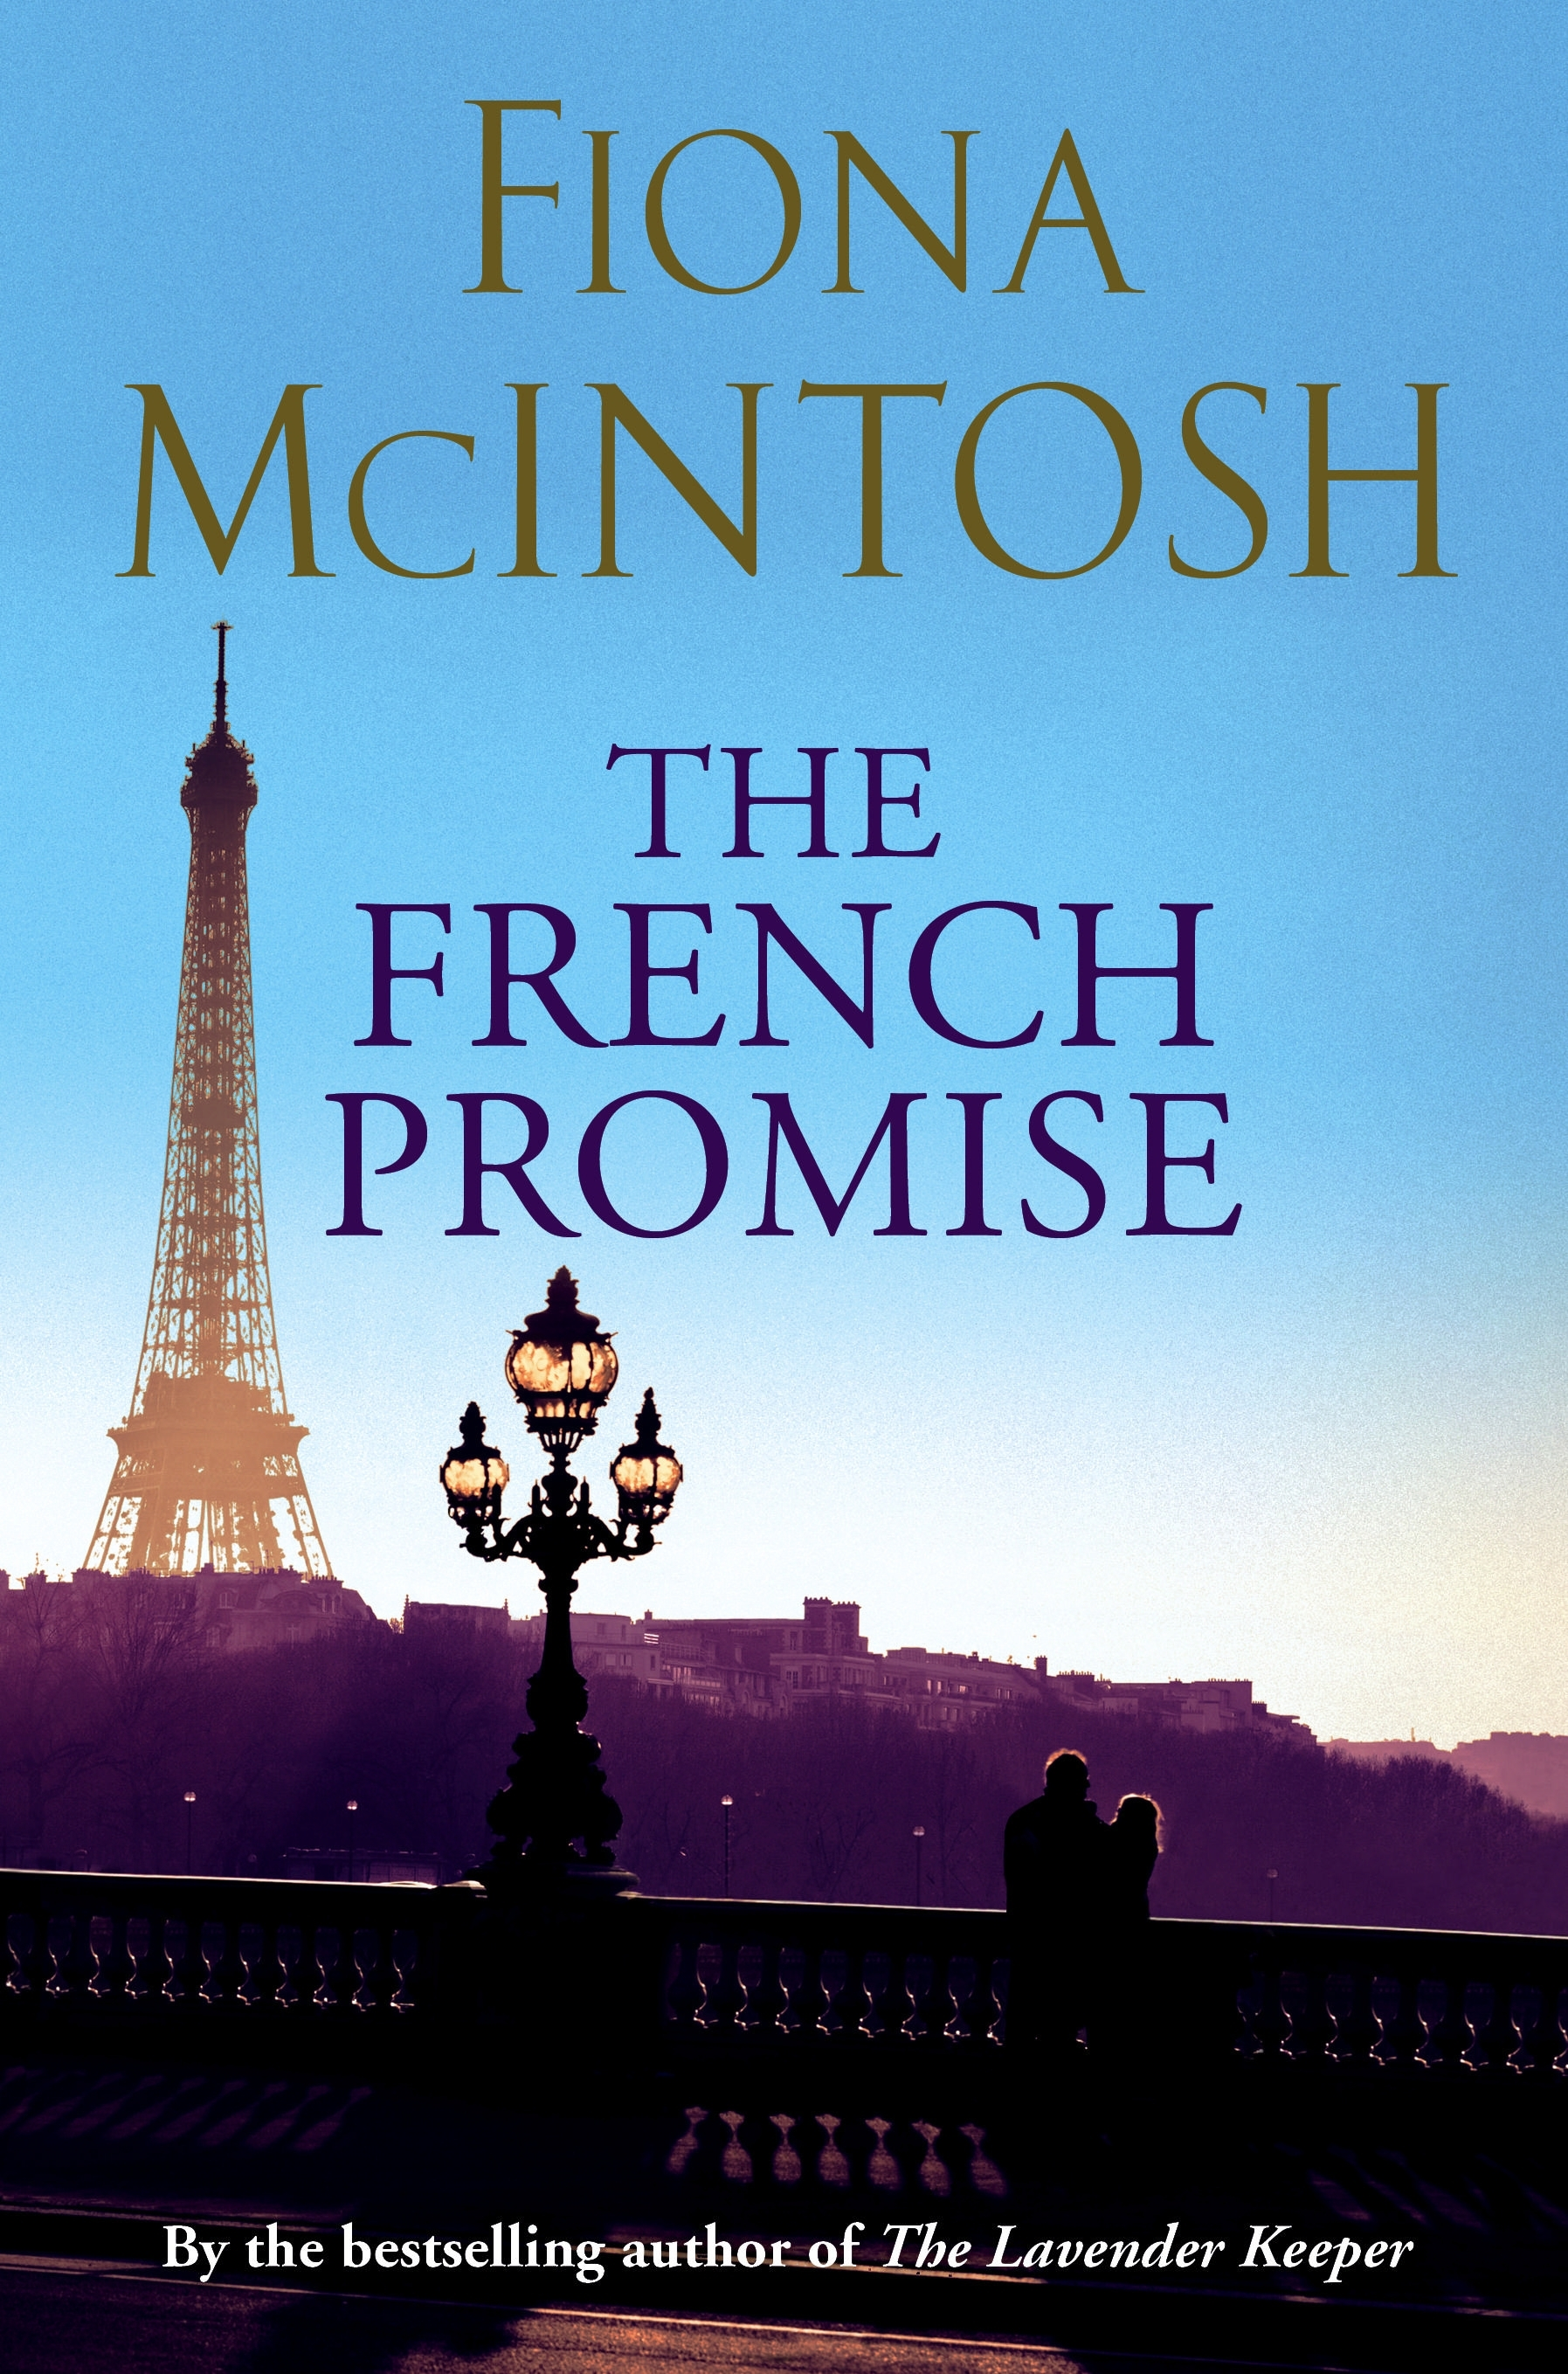 French Promise by Fiona McIntosh